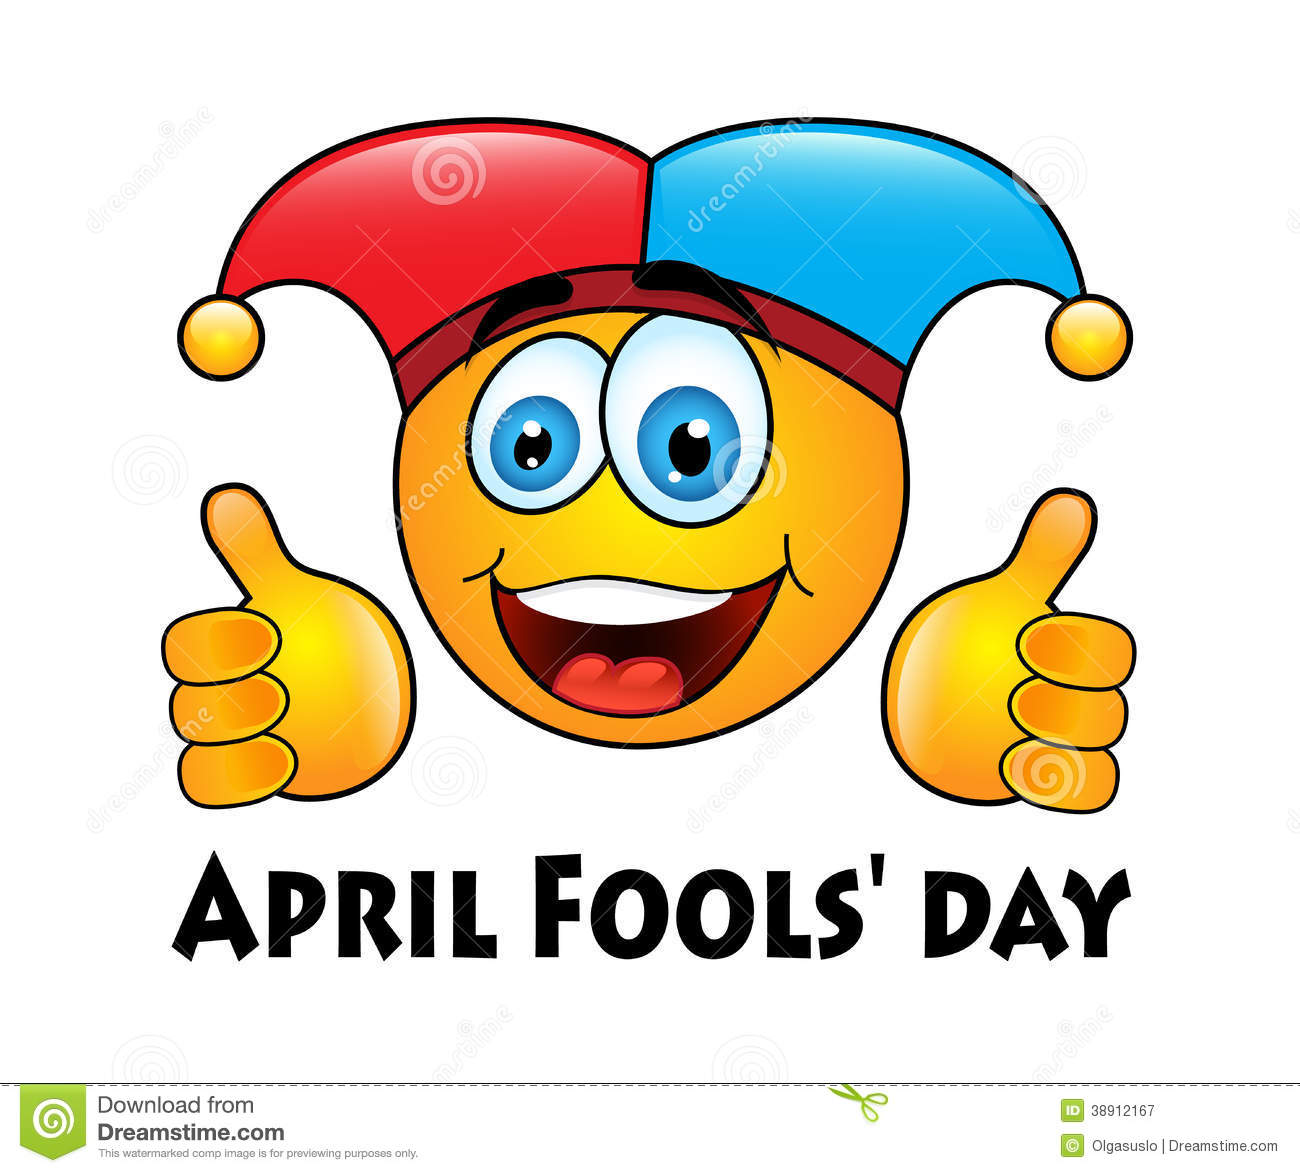 April Fools' Day Stock Illustration - Image: 38912167